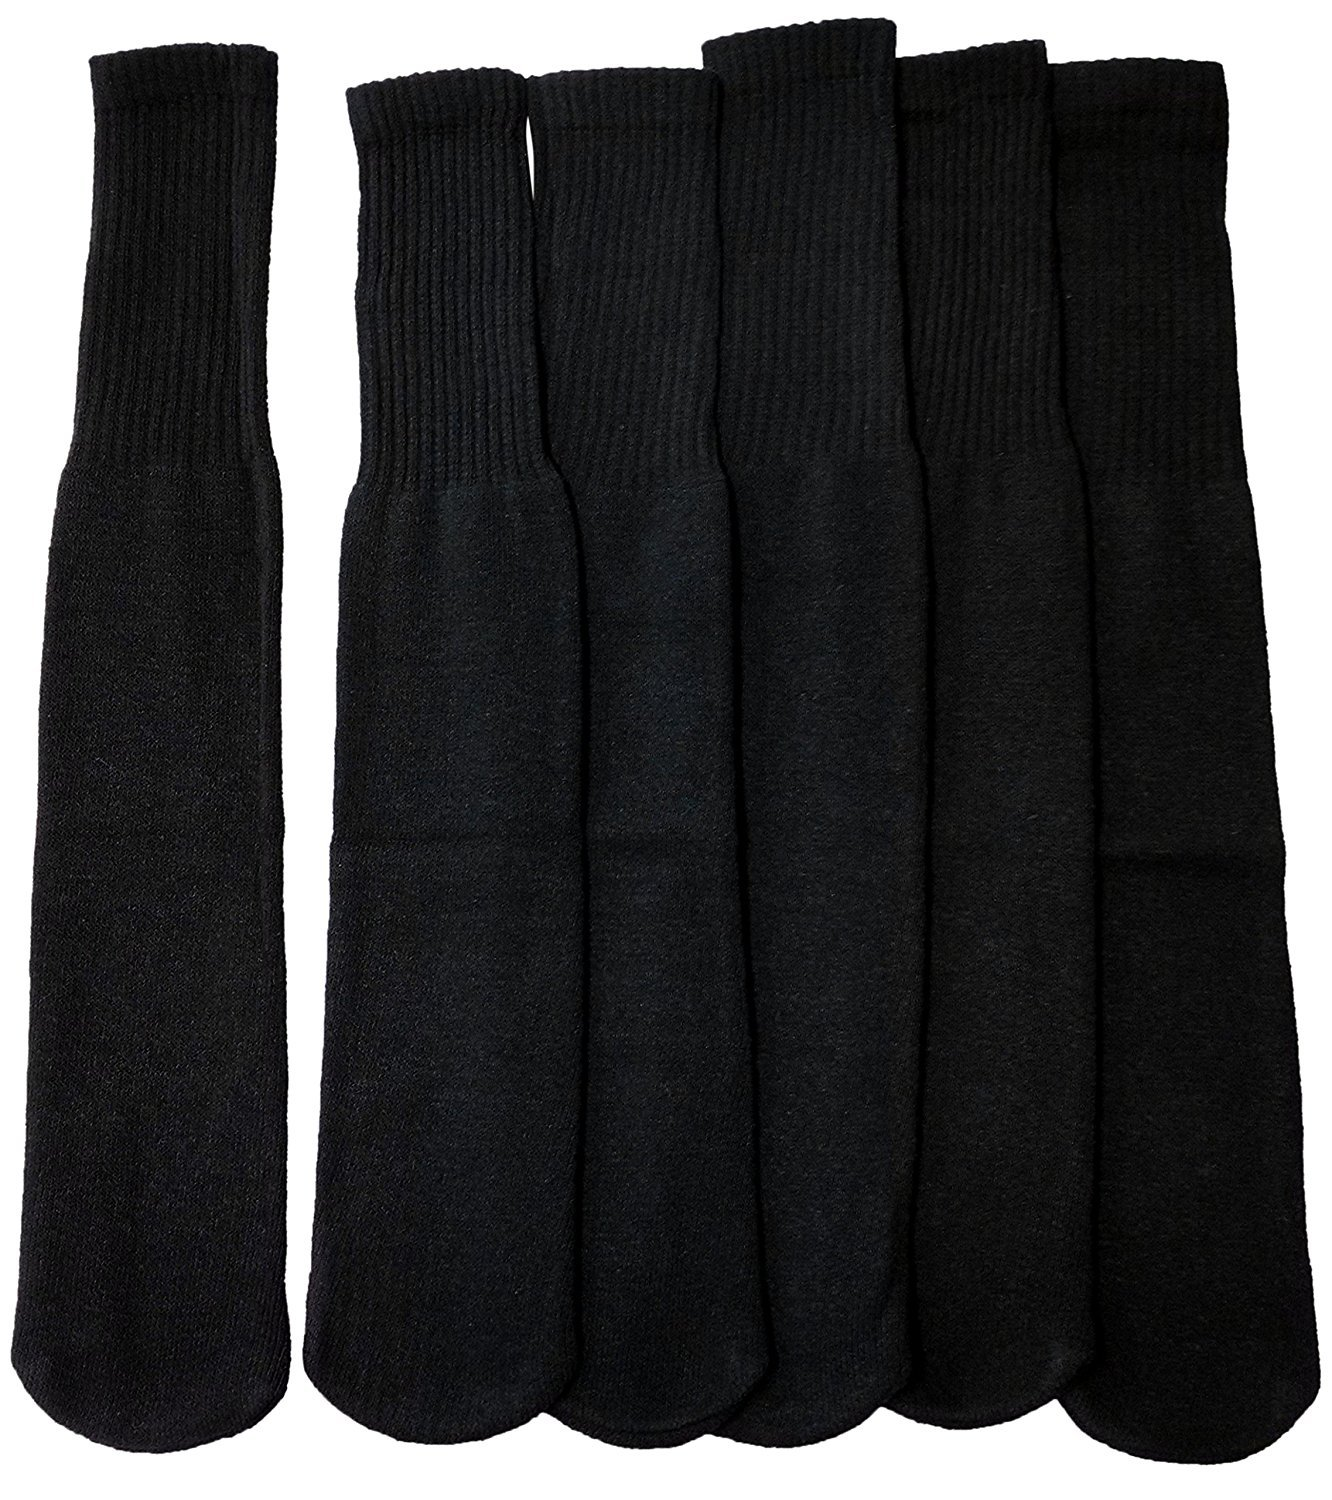 6 Pairs of excell Children's Cotton Tube Socks, Black, Unisex, Size 6-8 684-6-8-B